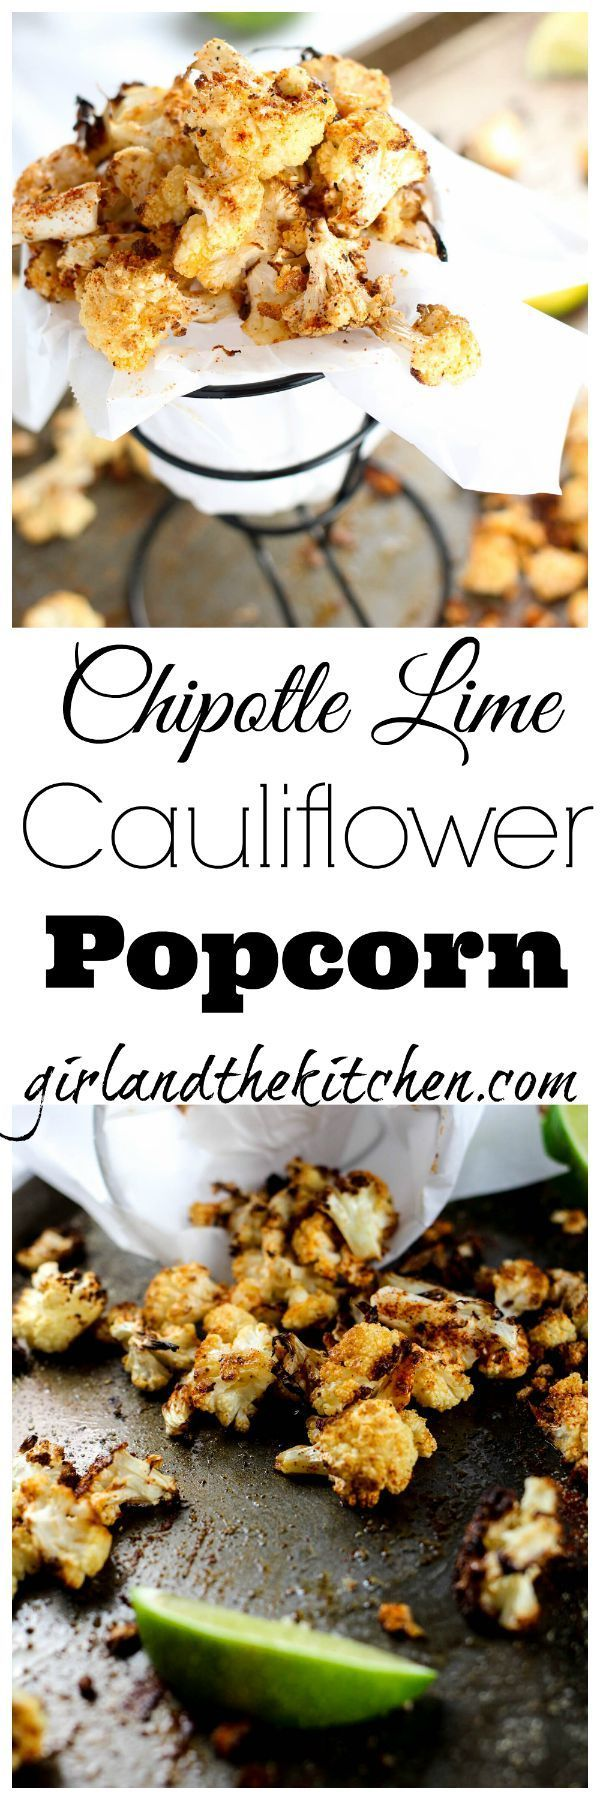 The ultimate movie snack just got healthy! My chili lime oven roasted cauliflower popcorn looks as cute as the original but tastes a heck of a lot better! With subtle citrus notes and a spicy kick this faux popcorn is the perfect couch munch food. All the flavor and none of the guilt=heaven!!!